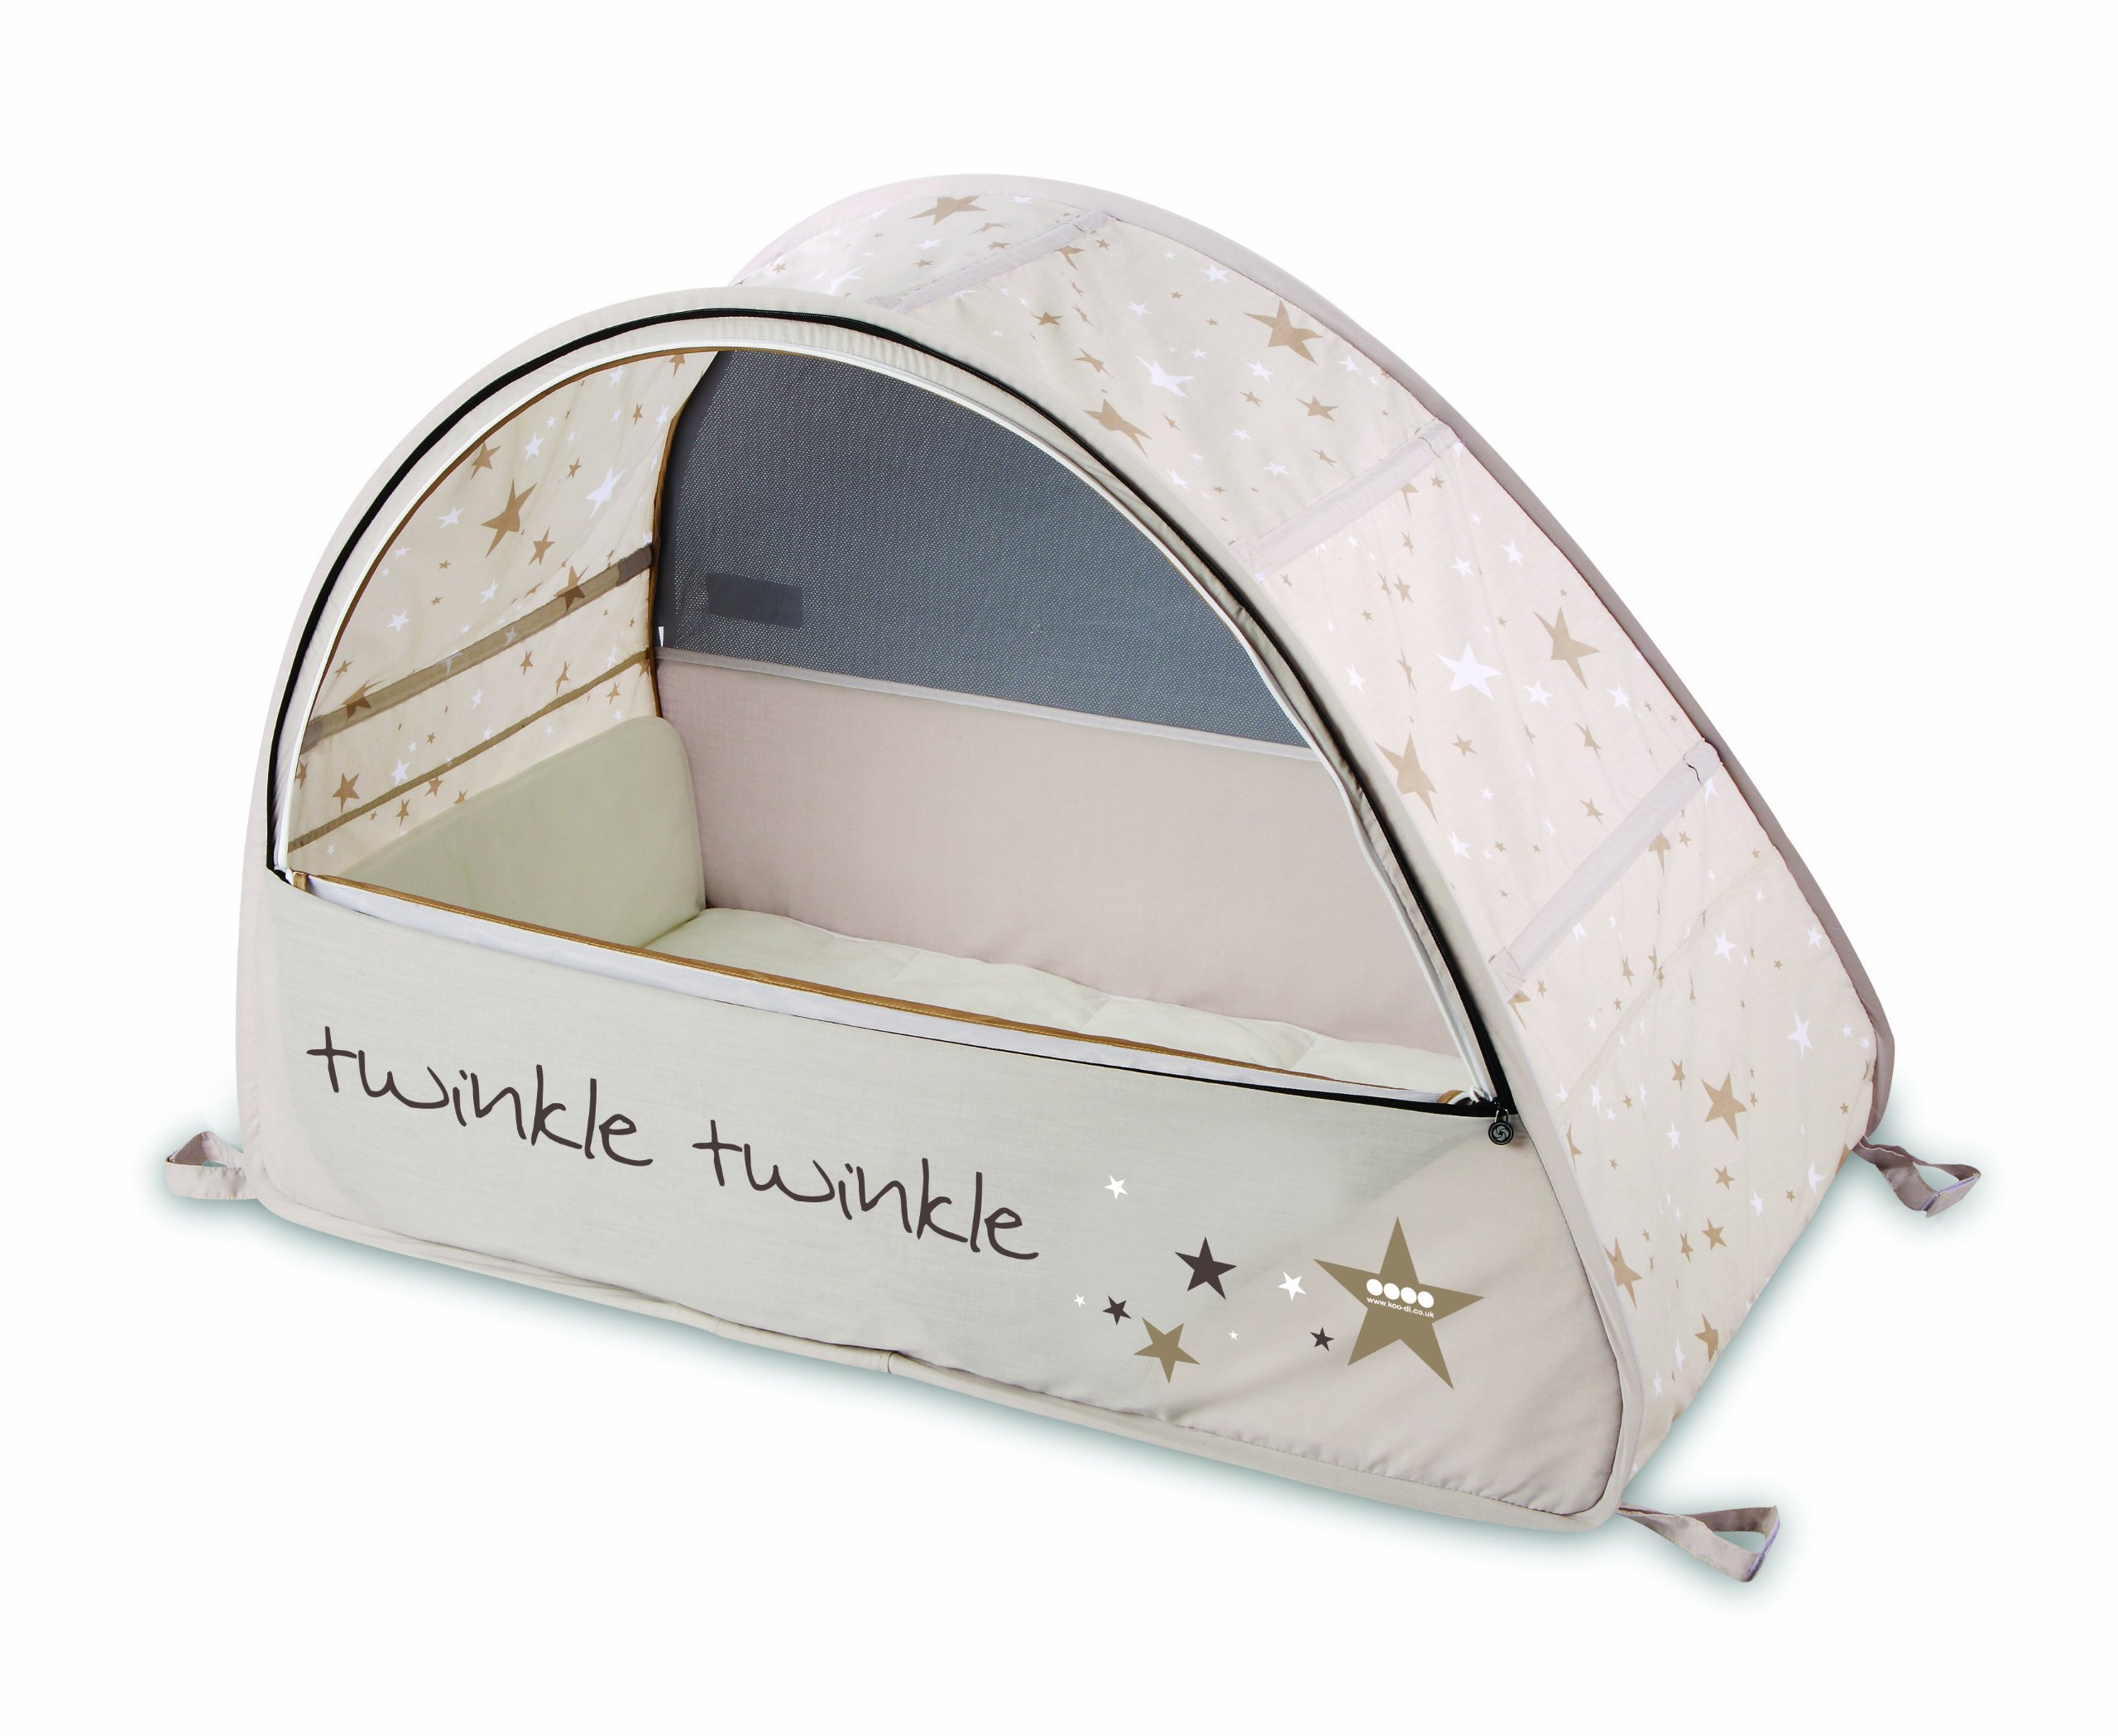 Koo-di 100 x 60 x 73 cm Sun and Sleep Pop Up Travel Bubble Cot  A comfortable cot ideal for use at home and on holidays or weekends away A polycotton travel cot Ideal 6-18 months and when outgrown, makes an ideal playhouse for little ones 3